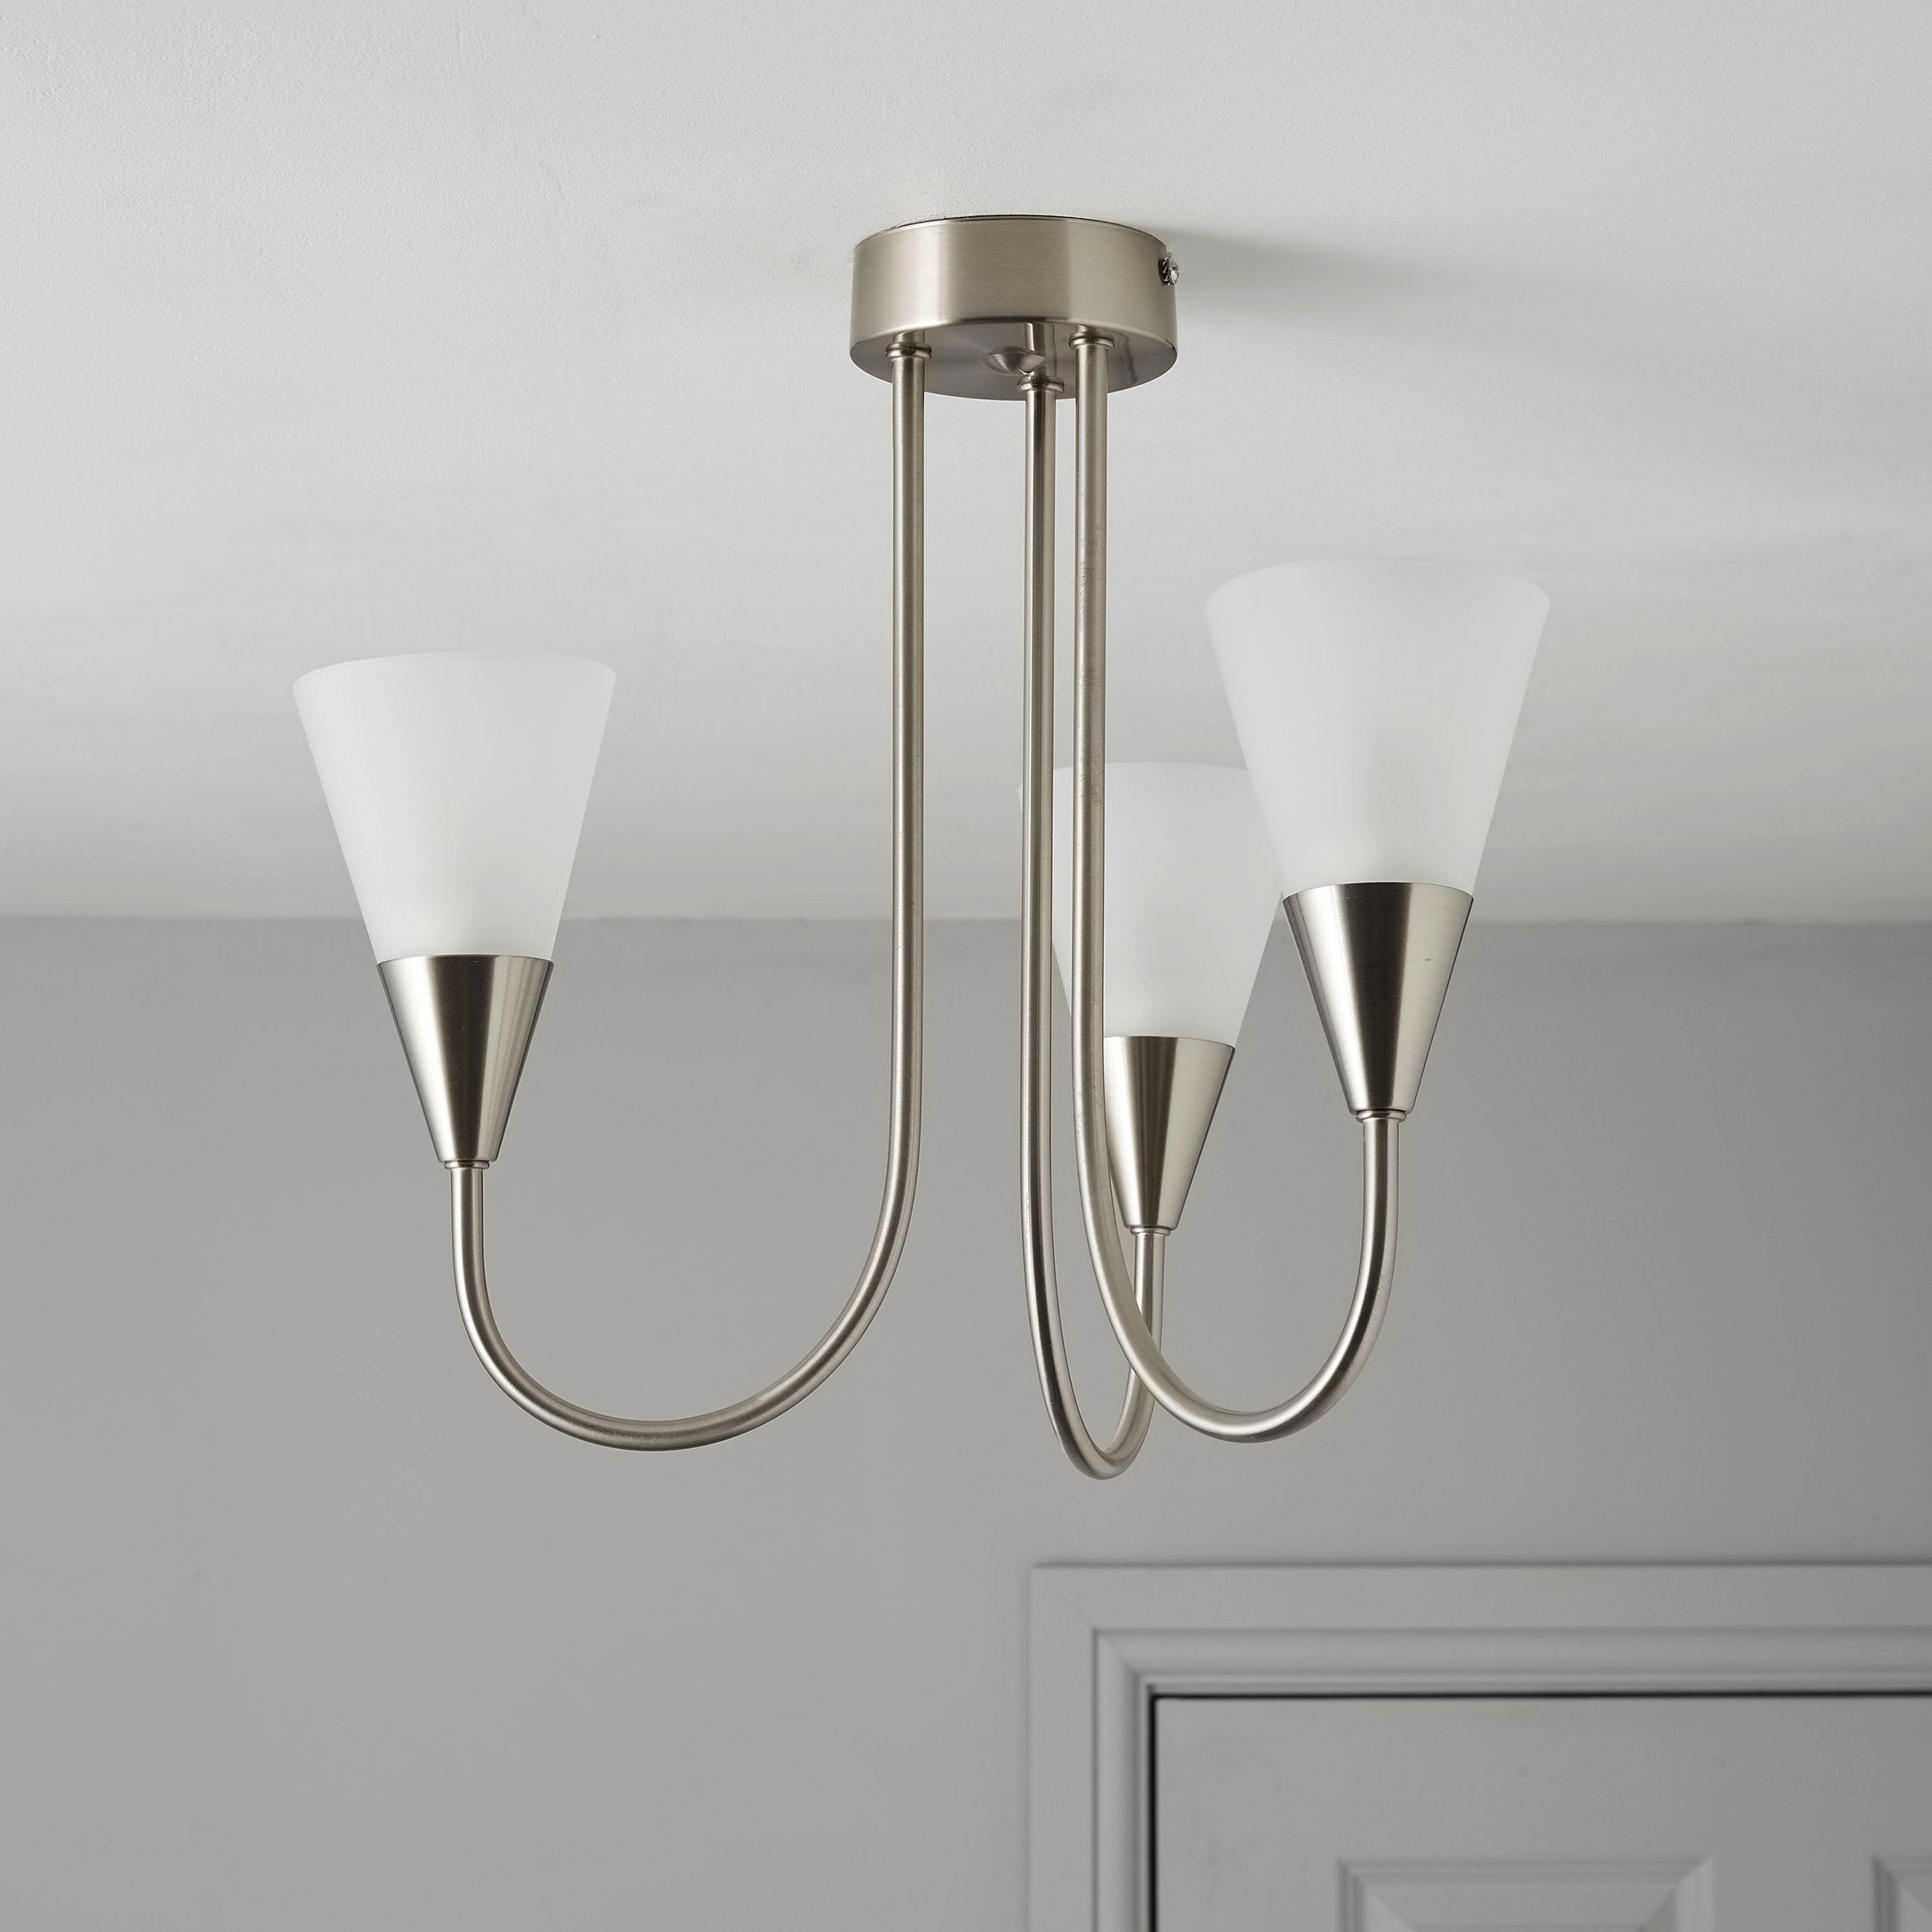 2019 Ceiling Light Fittings B&q #2 Reya Nickel Effect 3 Lamp Pendant Regarding Outdoor Ceiling Lights At B&q (View 2 of 20)